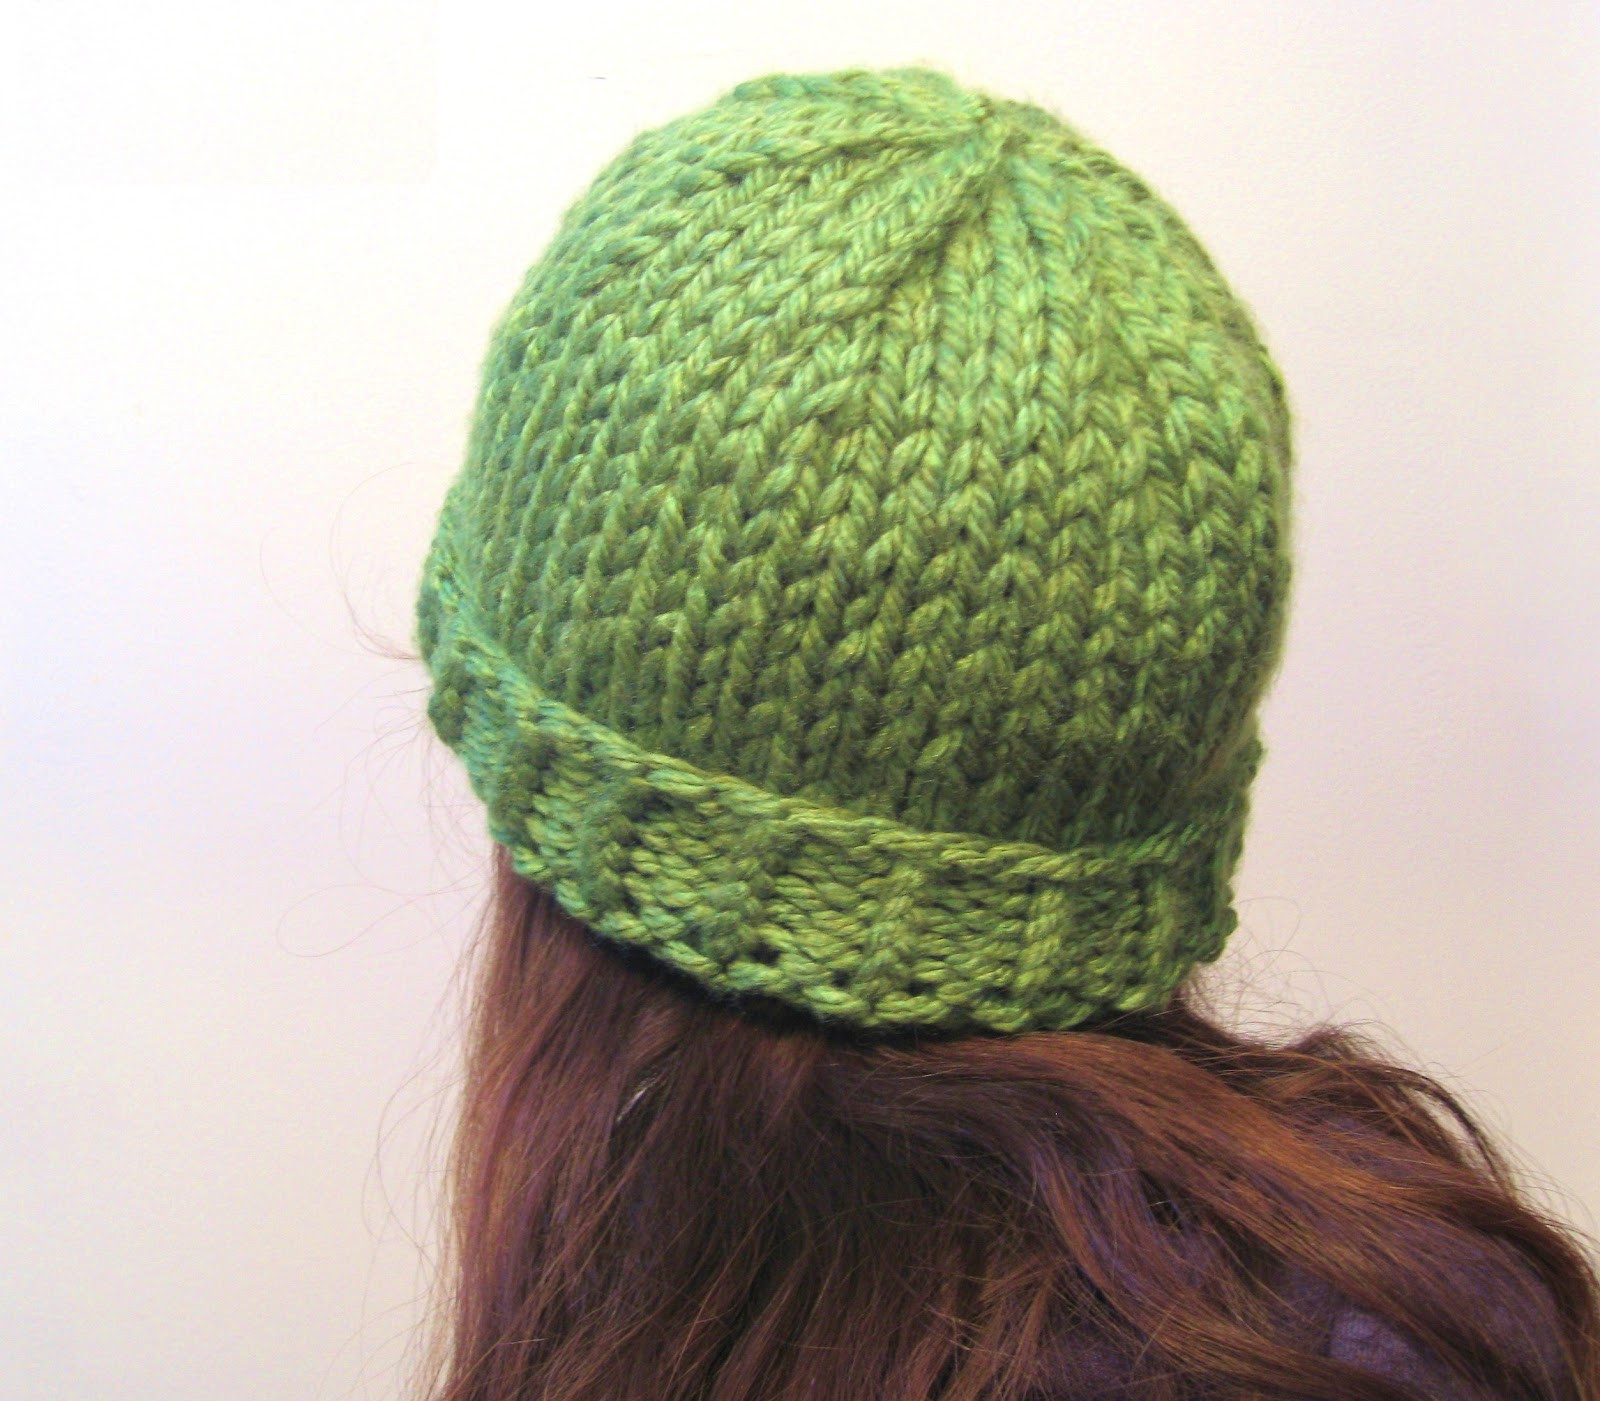 Hat Patterns Lovely Megan E Sass Handknits Free Knitting Pattern Easy Chunky Of Luxury 49 Pictures Hat Patterns